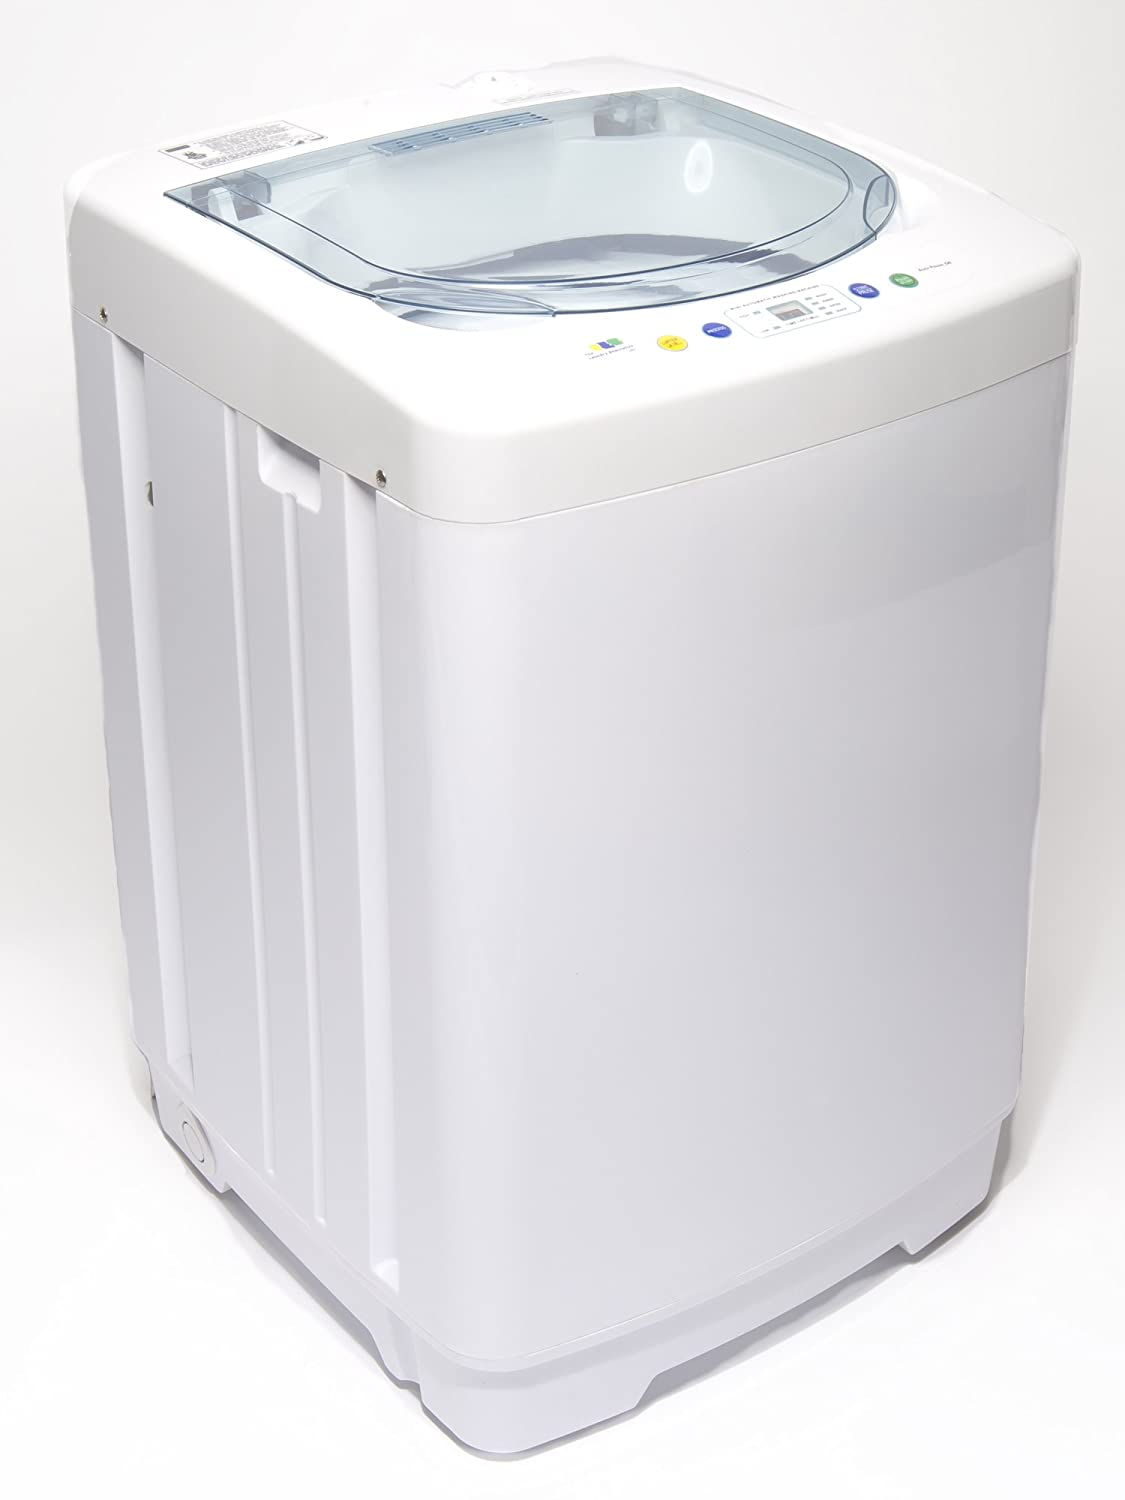 Portable Washing Machine Laundry Electric Automatic Washer Compact Load Dorm 55  eBay